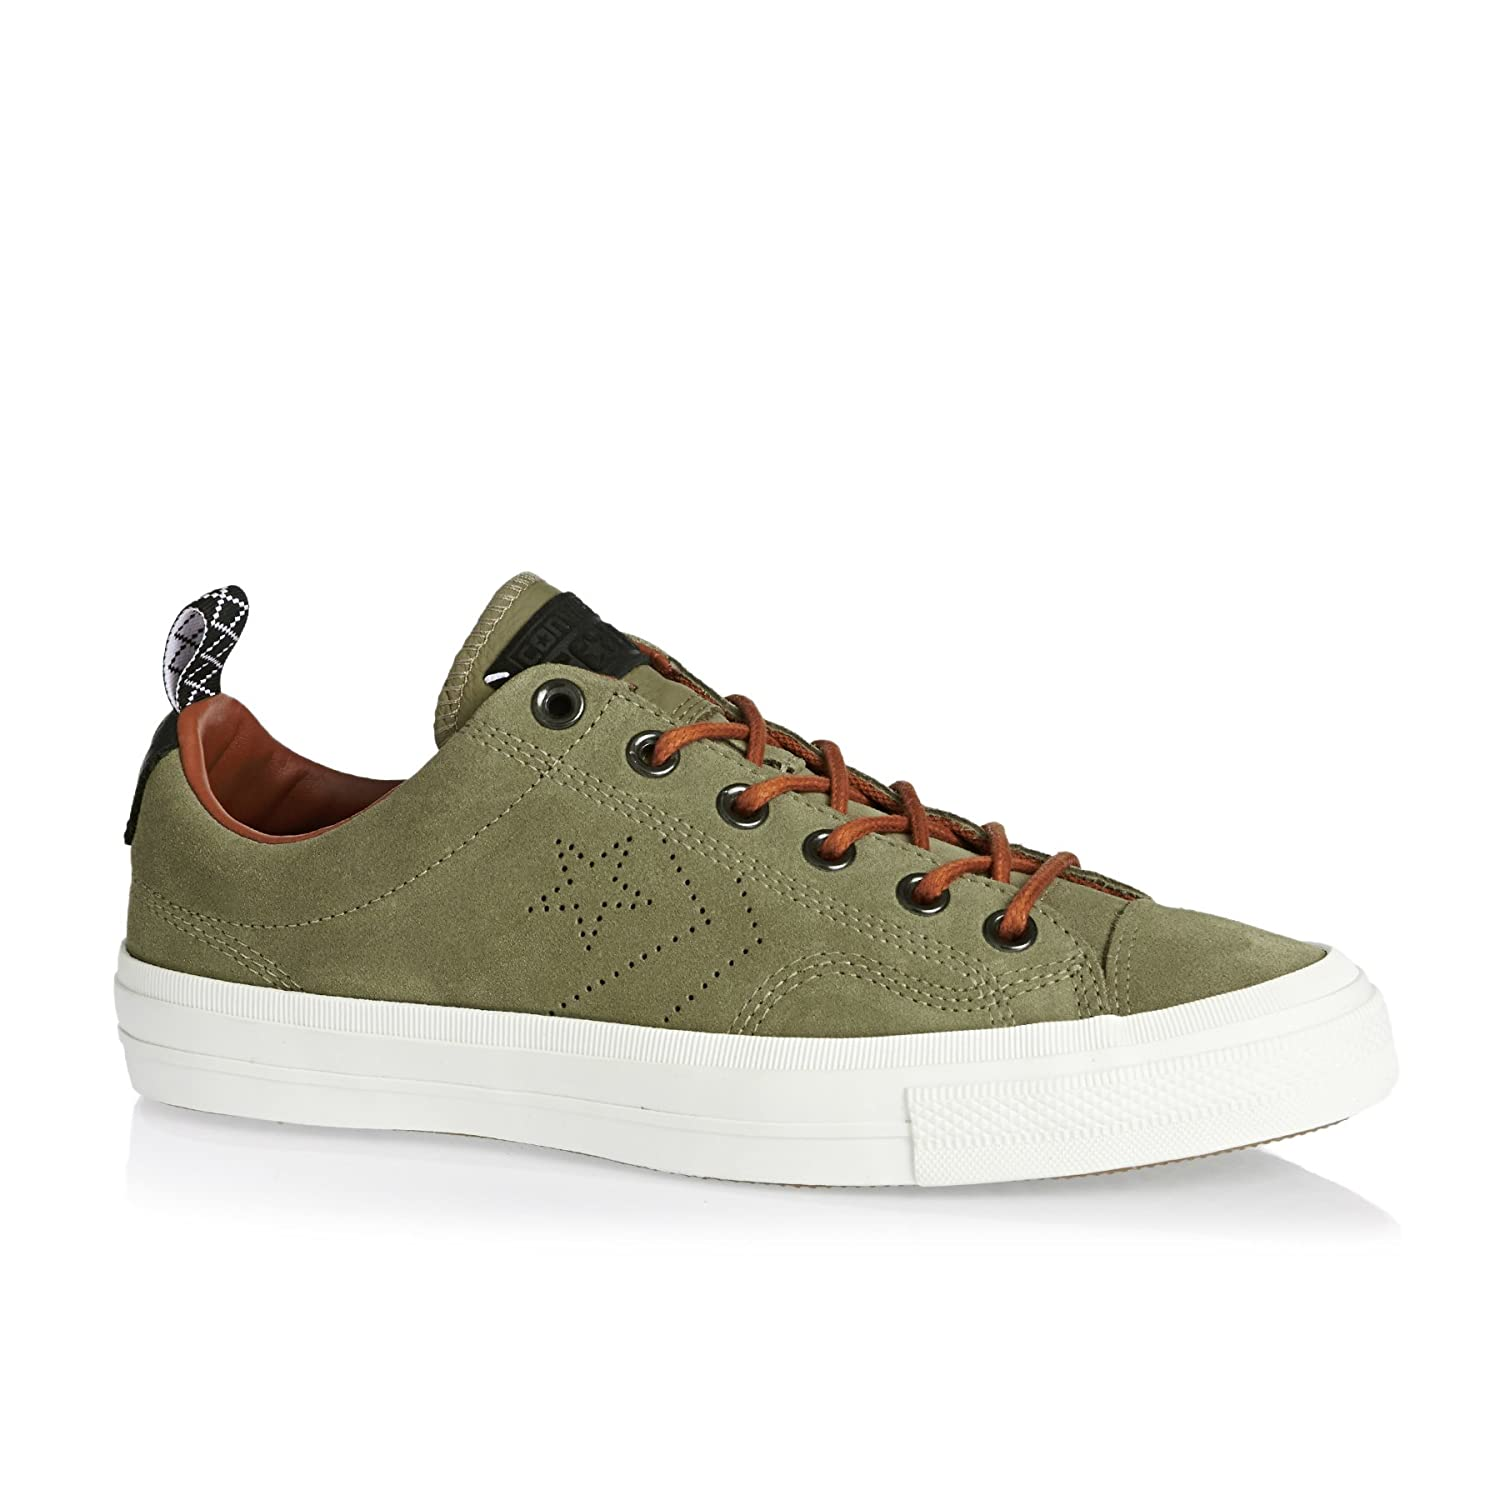 6570b8f949f Converse Star Player Premium Suede Ox Trainers Green 11 UK  Amazon.co.uk   Books